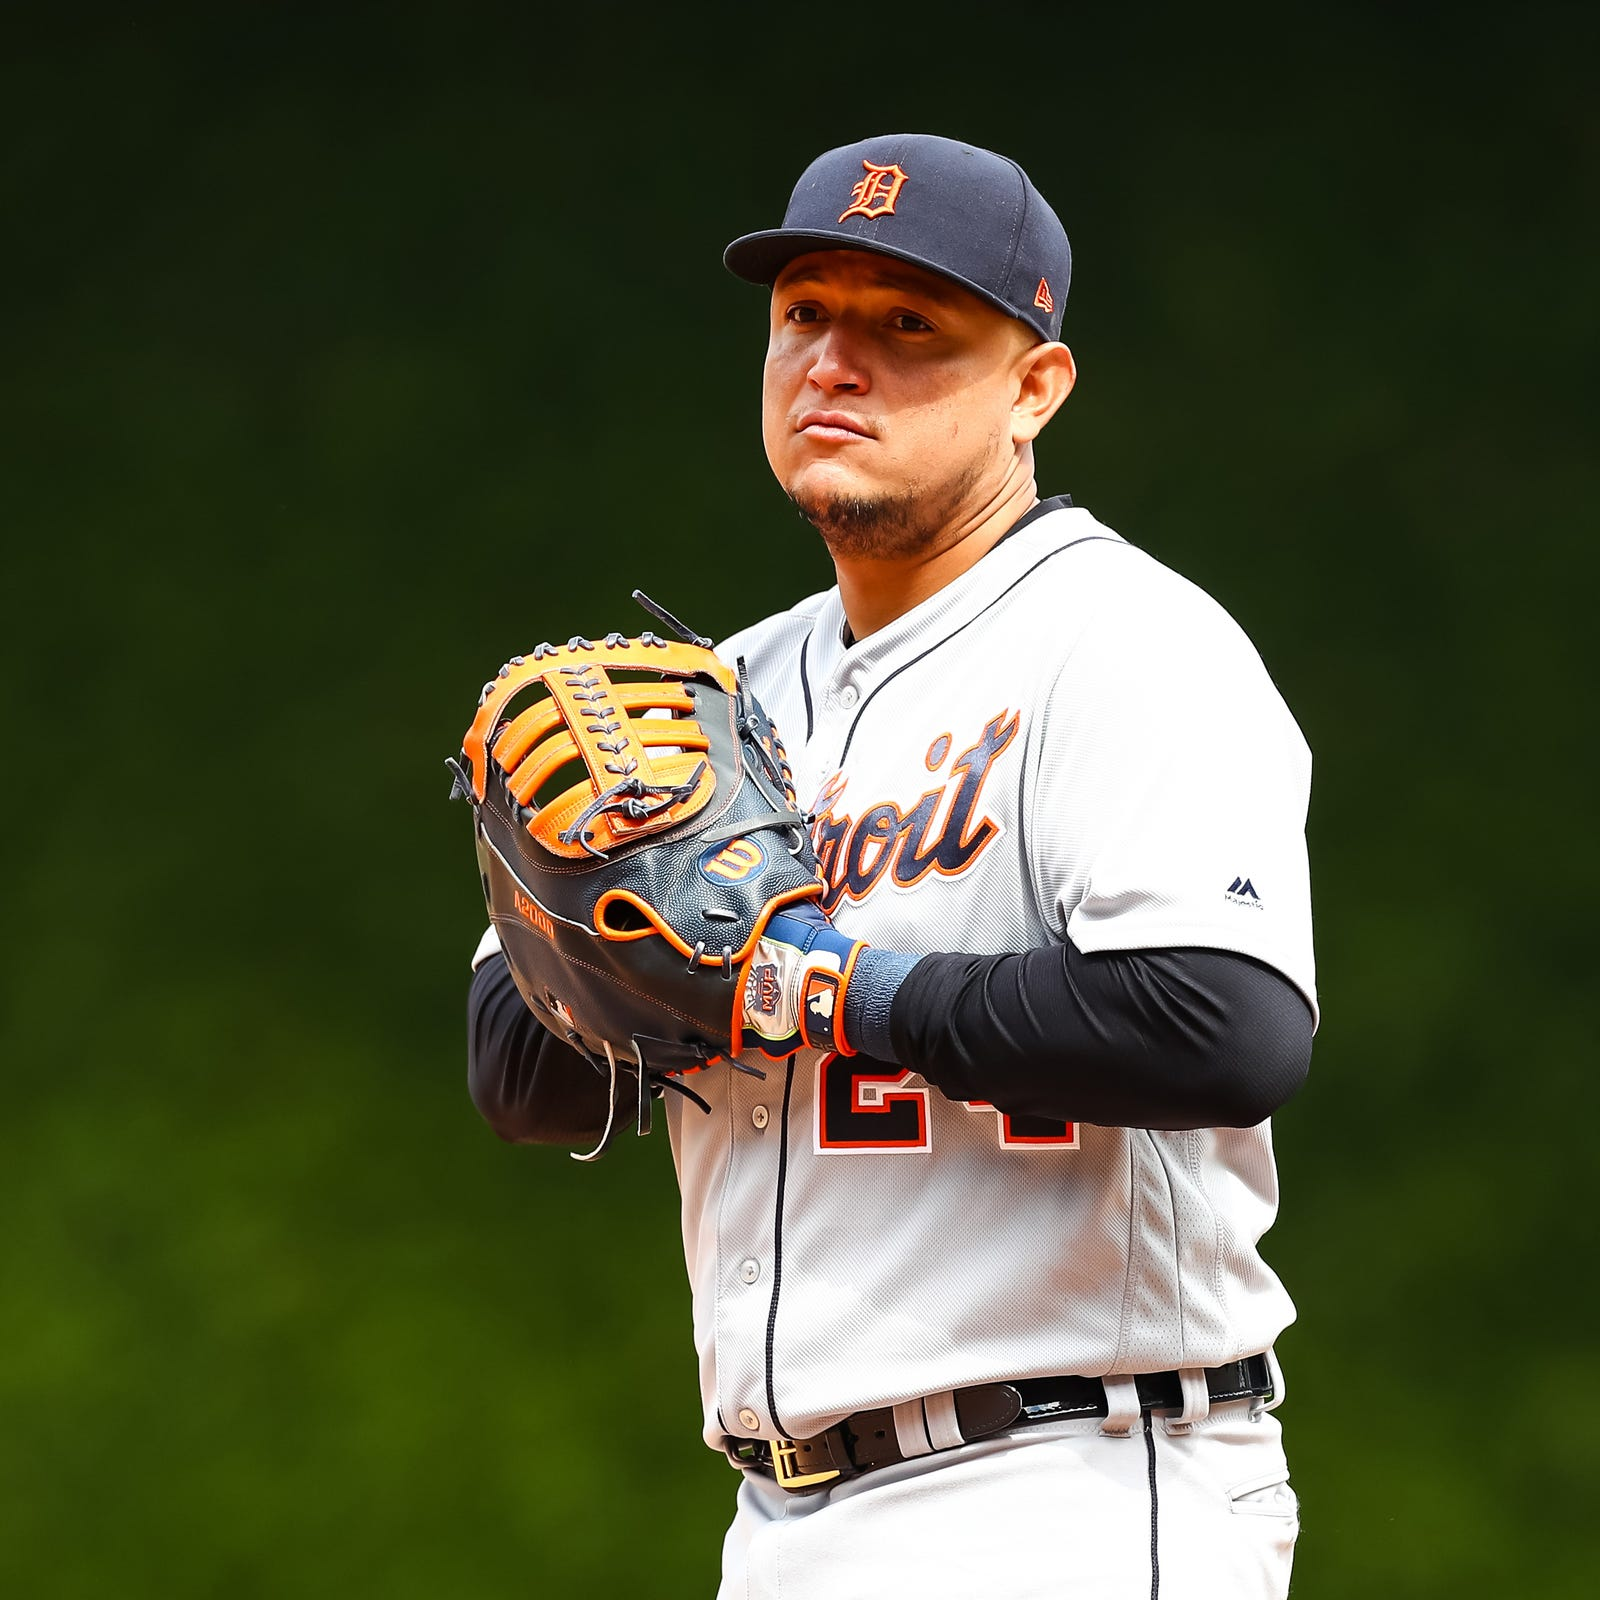 Detroit Tigers' Miguel Cabrera ejected in first inning vs. Twins